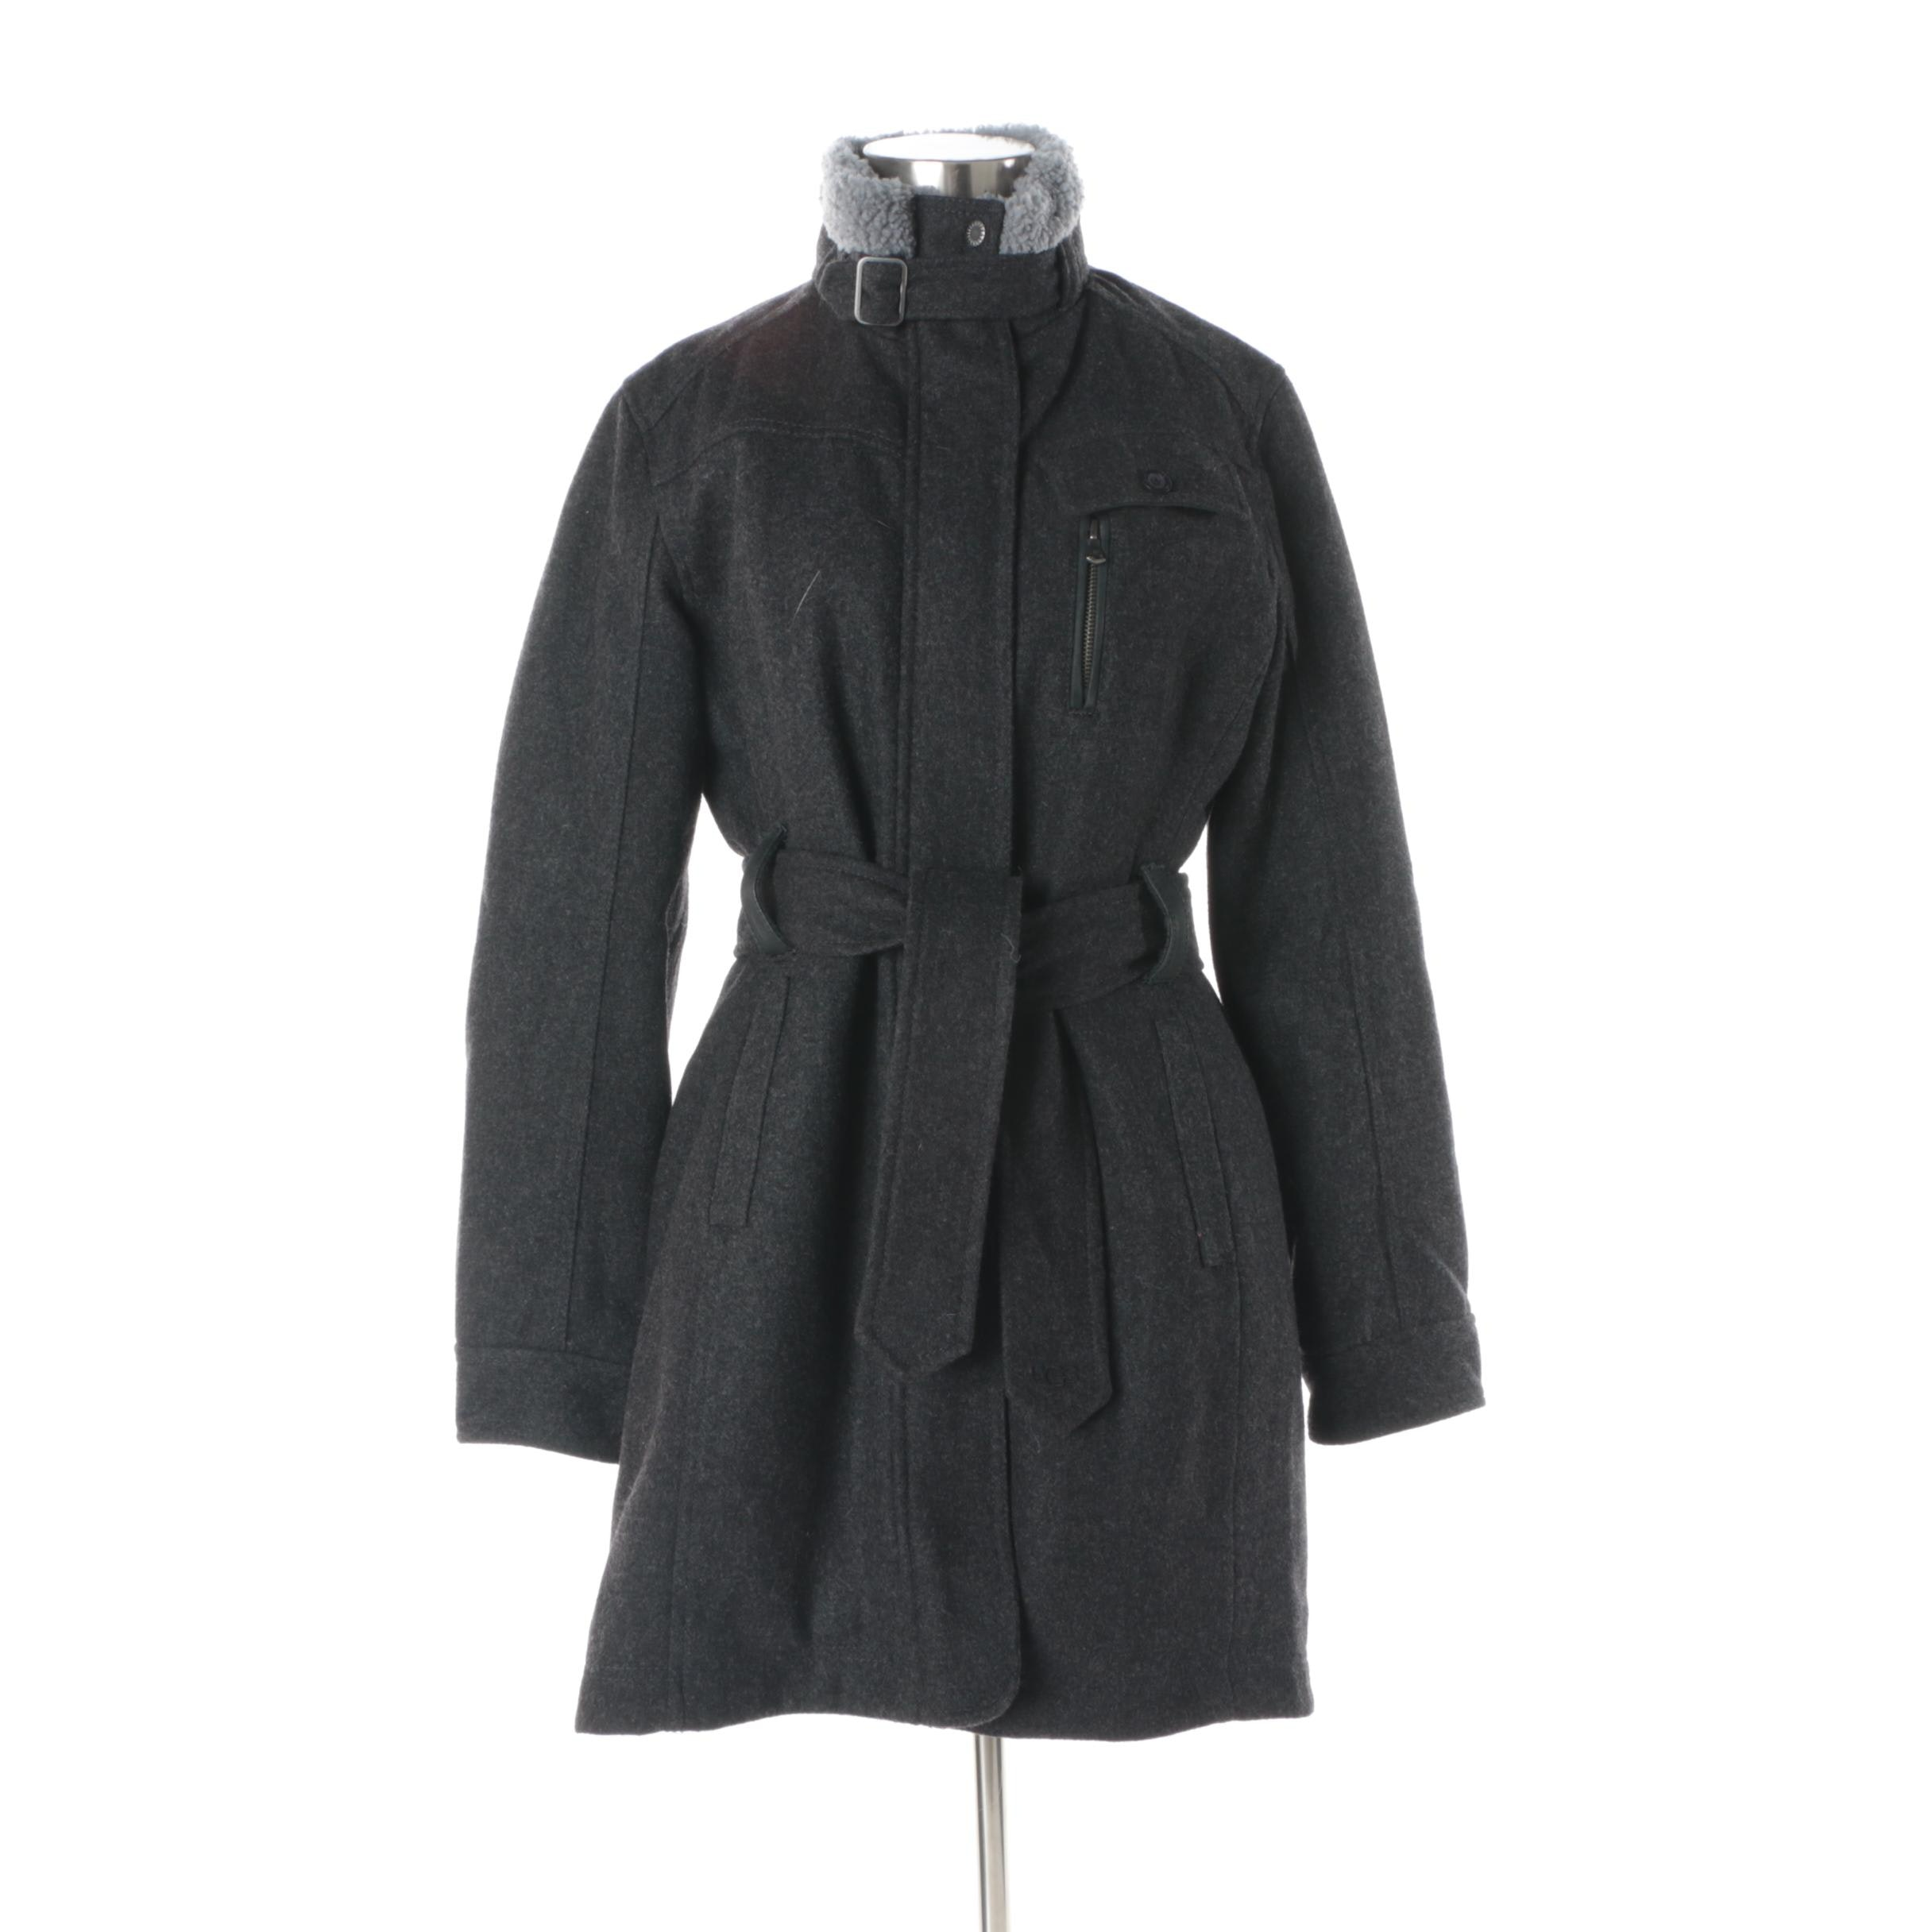 Women's UGG Australia Charcoal Wool Coat with Shearling Collar